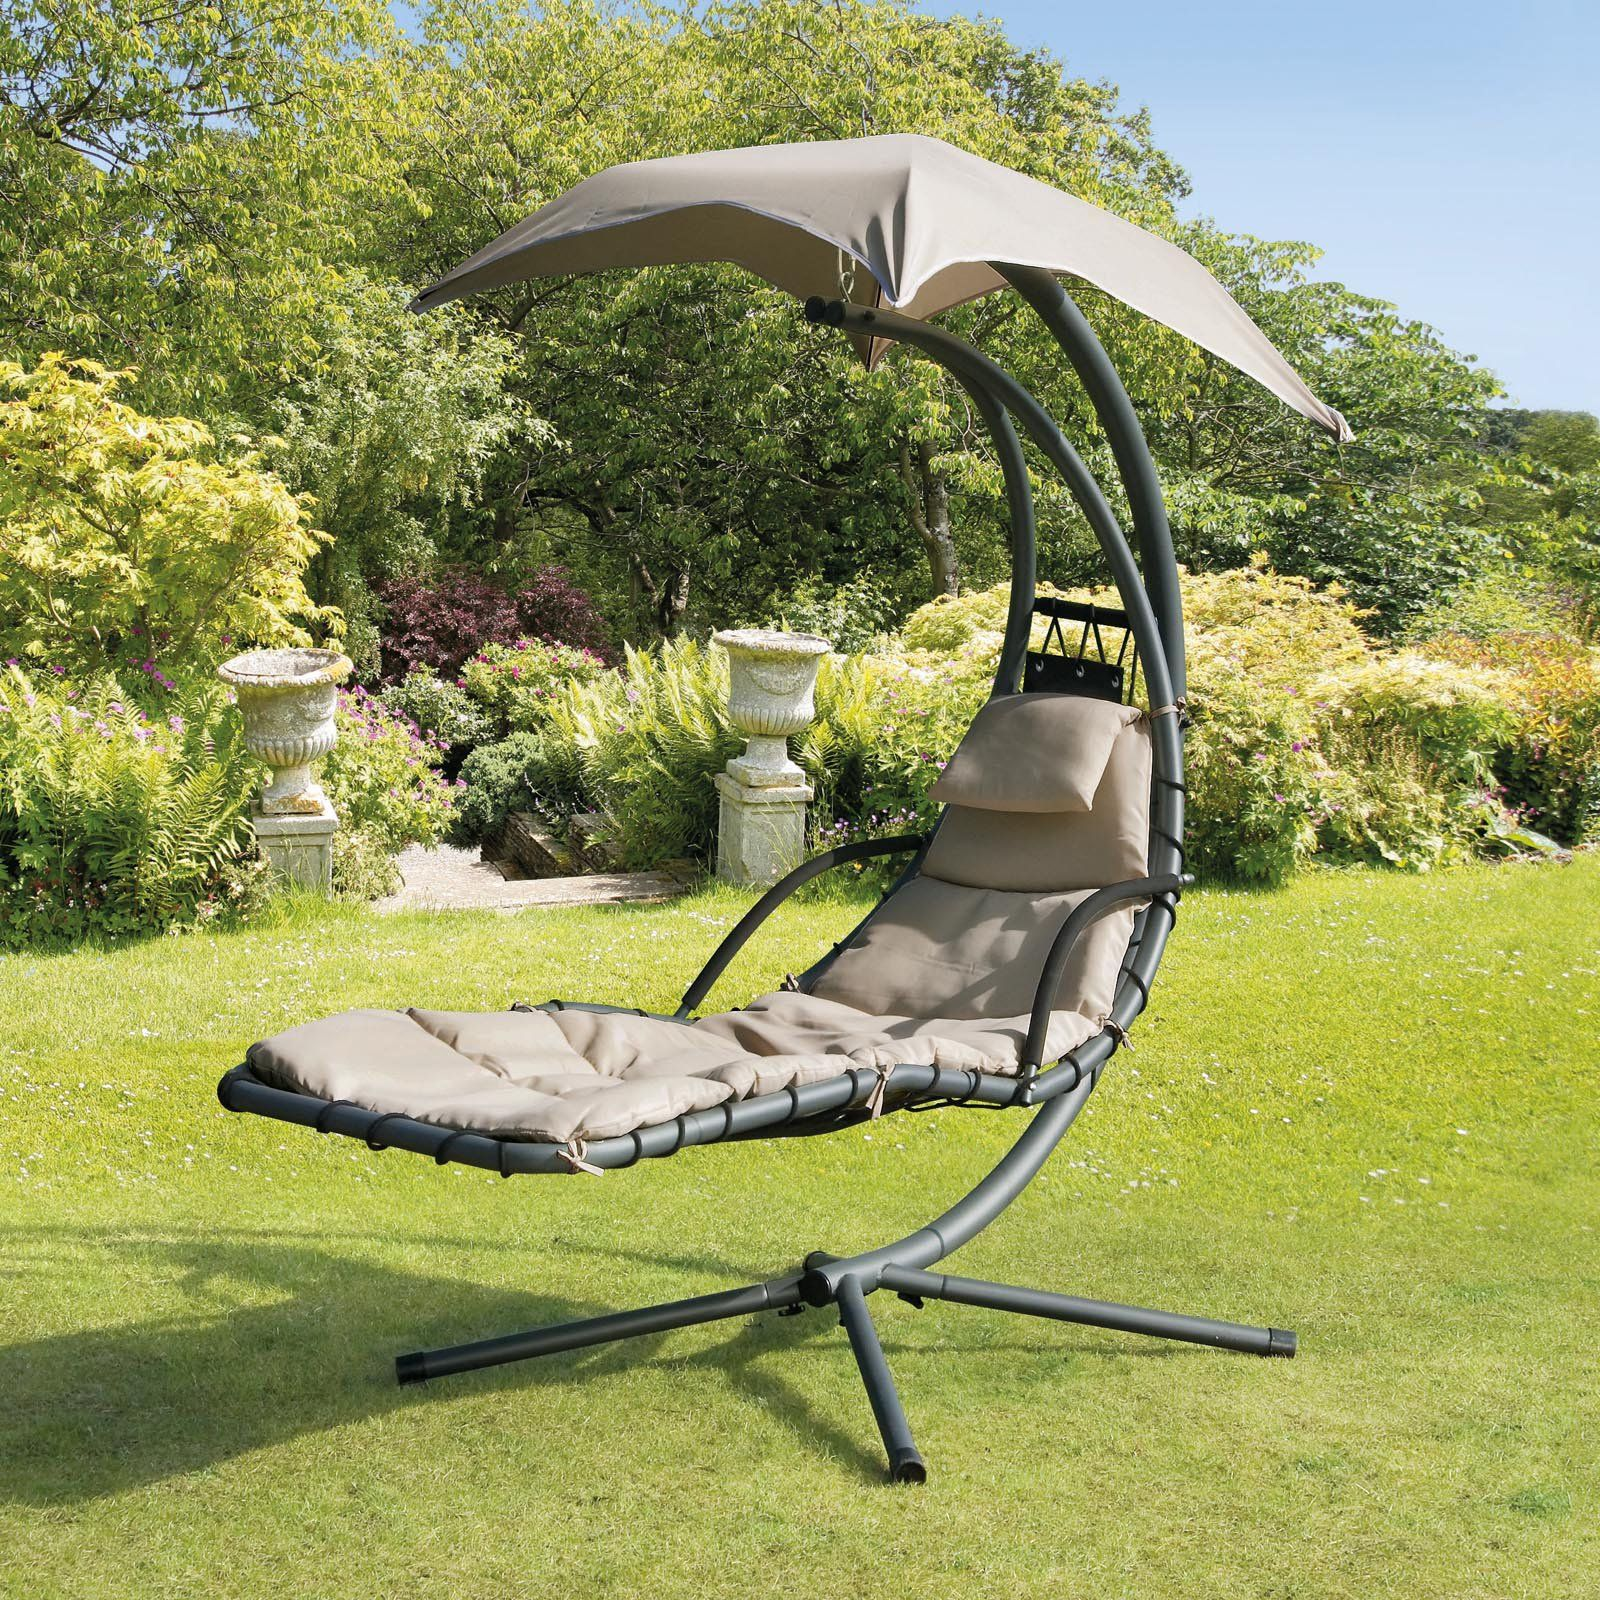 Transcontinental Outdoor Helicopter Swing Hammock Chair And Stand | From  Hayneedle.com